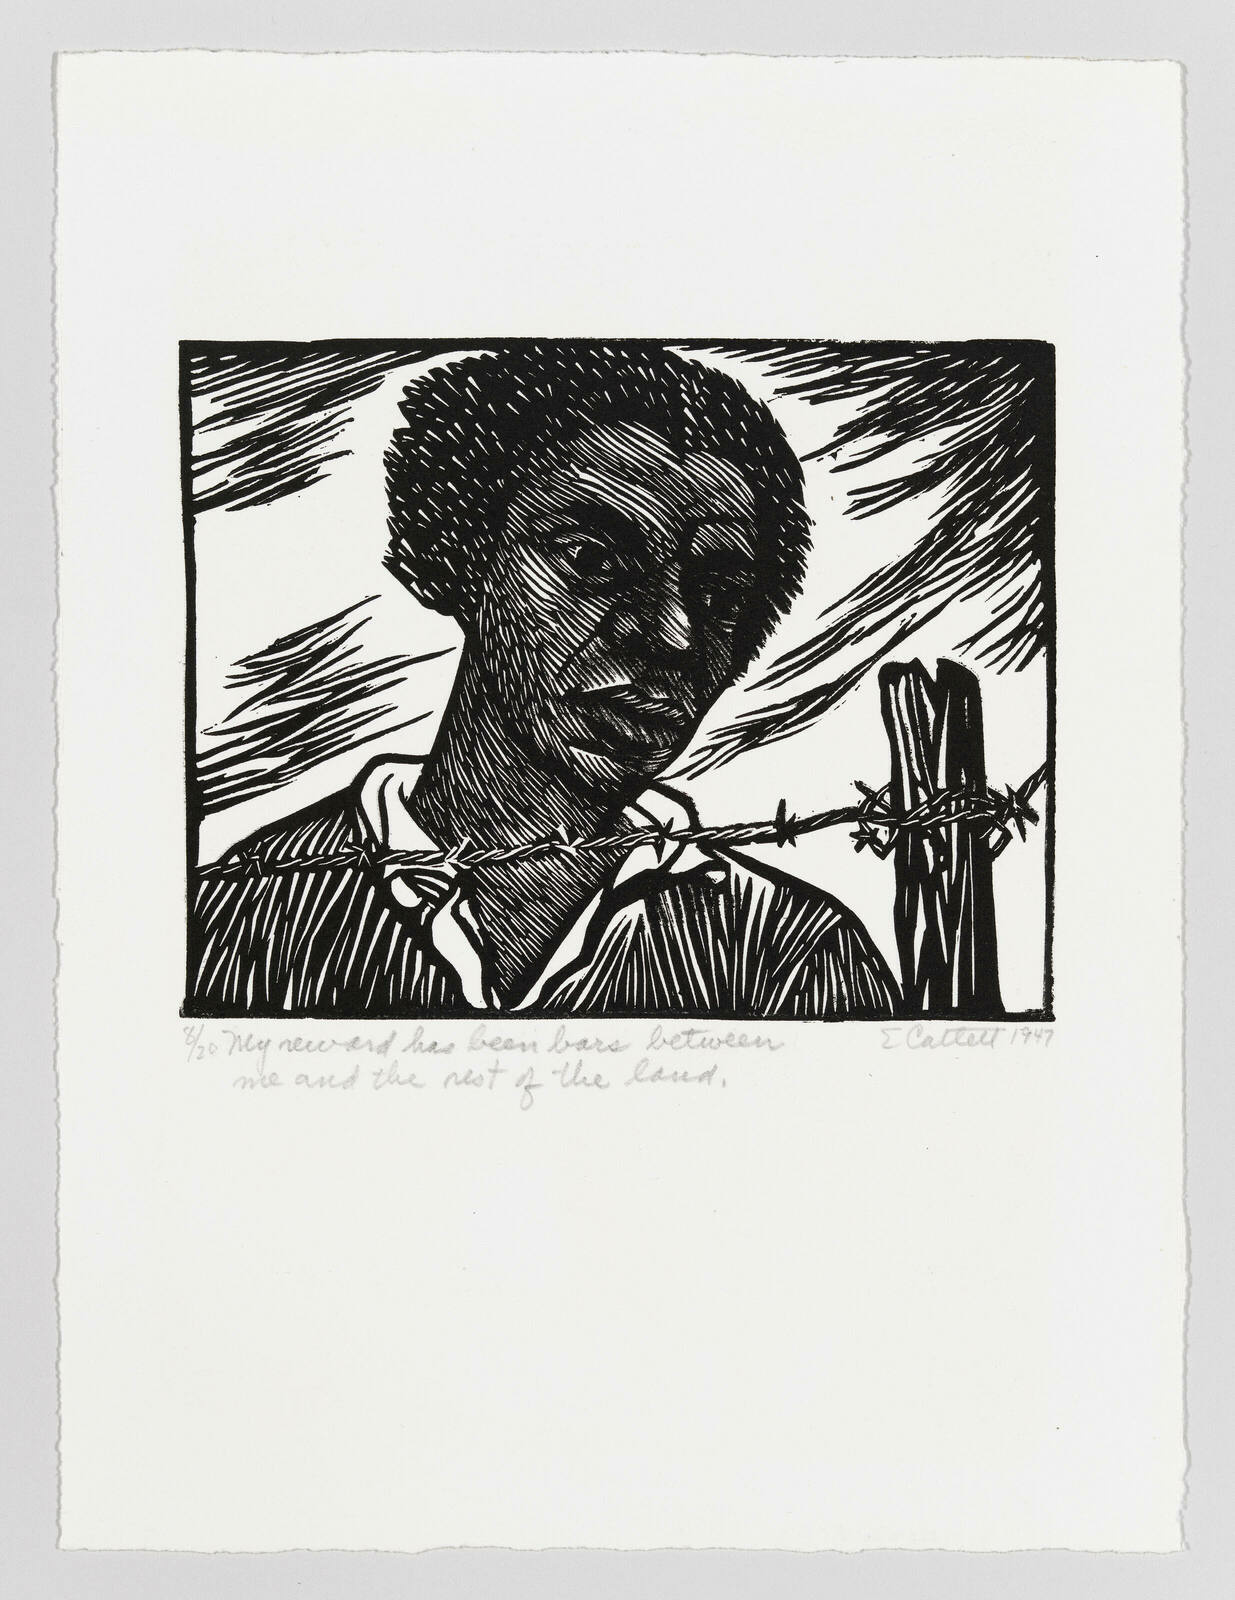 A Black person, composed of lines, looks beyond the barbed wire that crosses the foreground